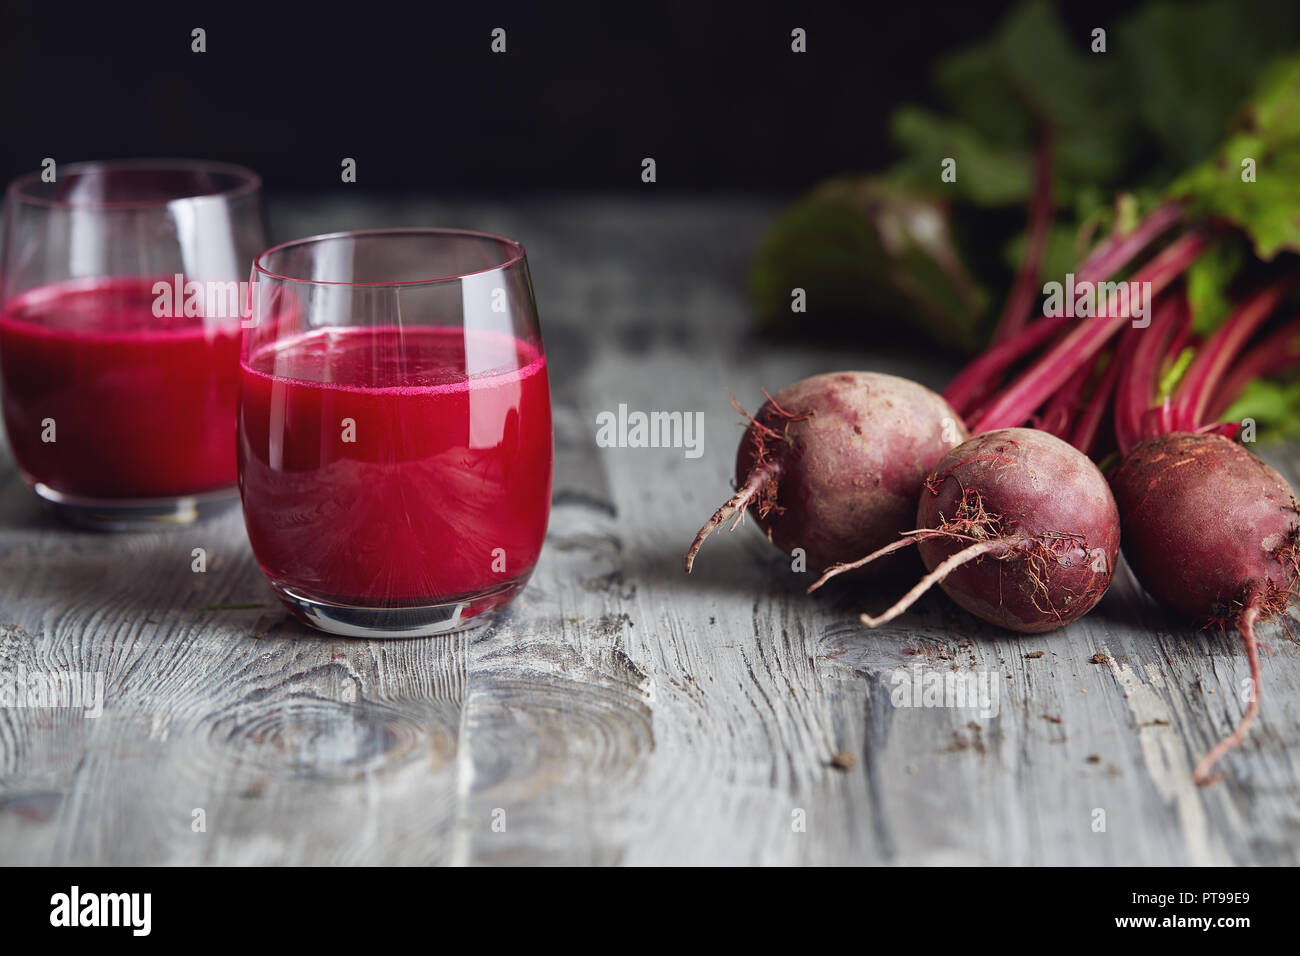 Detox juice with freshly picked bunch of beetroot. Fresh beets on a wooden table. Stock Photo